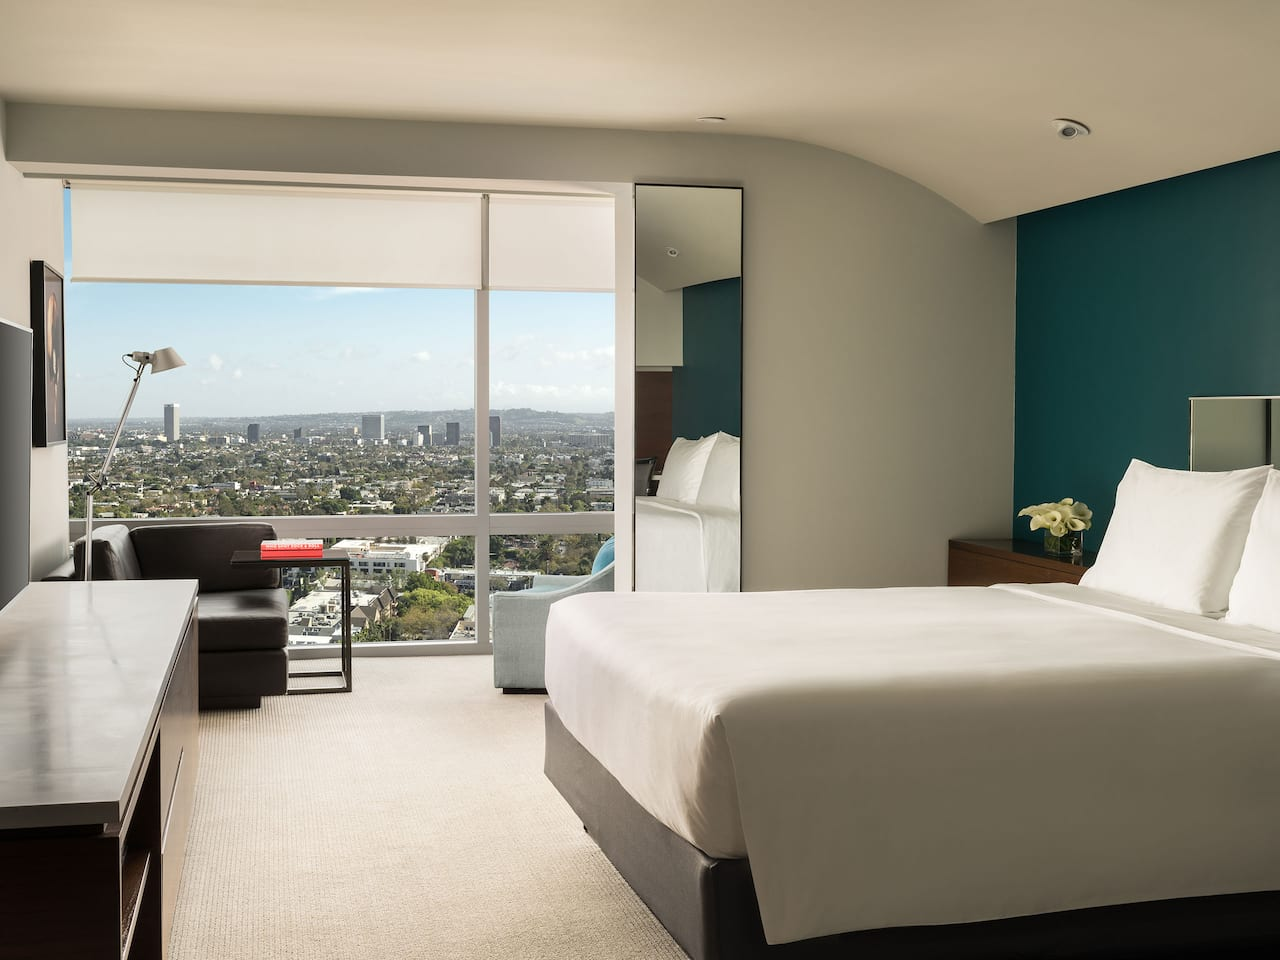 Hollywood Hotel Room with view of Sunset Strip